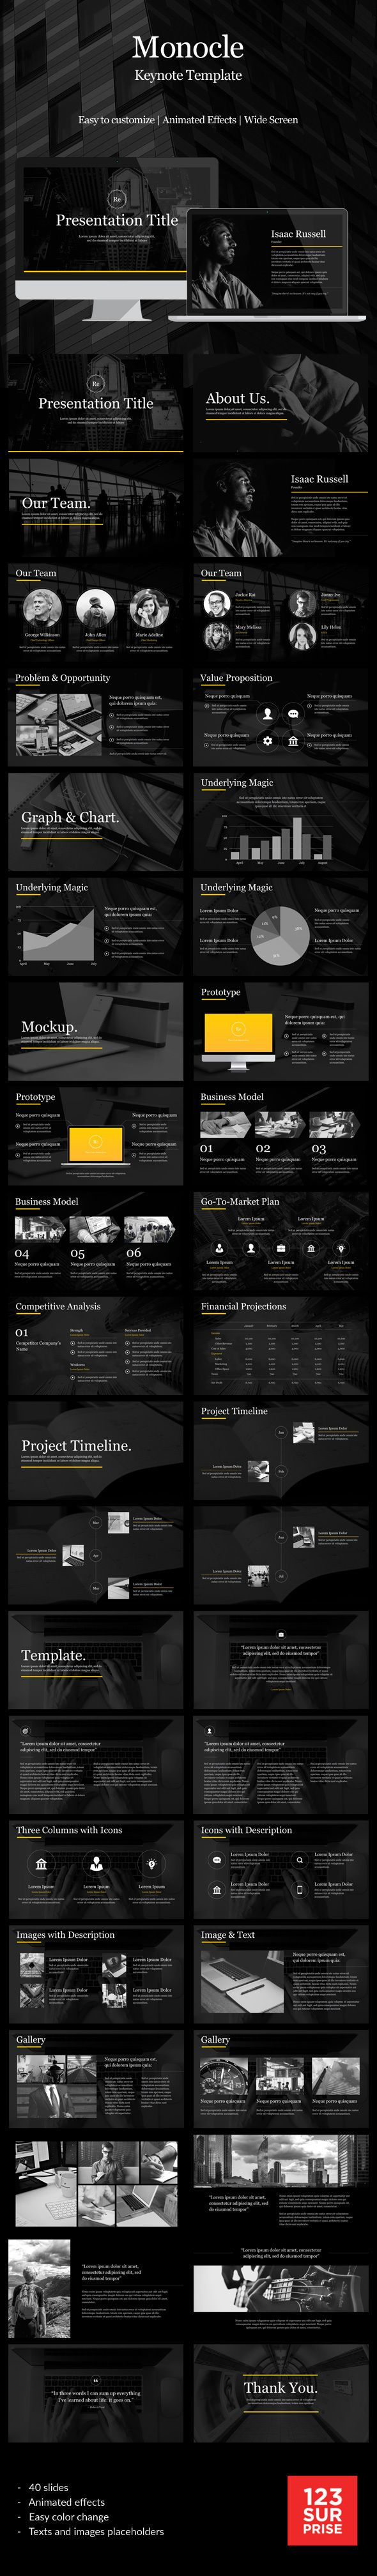 Monocle Keynote Template  #template #creative • Download ➝ https://graphicriver.net/item/monocle-keynote-template/14365198?ref=pxcr